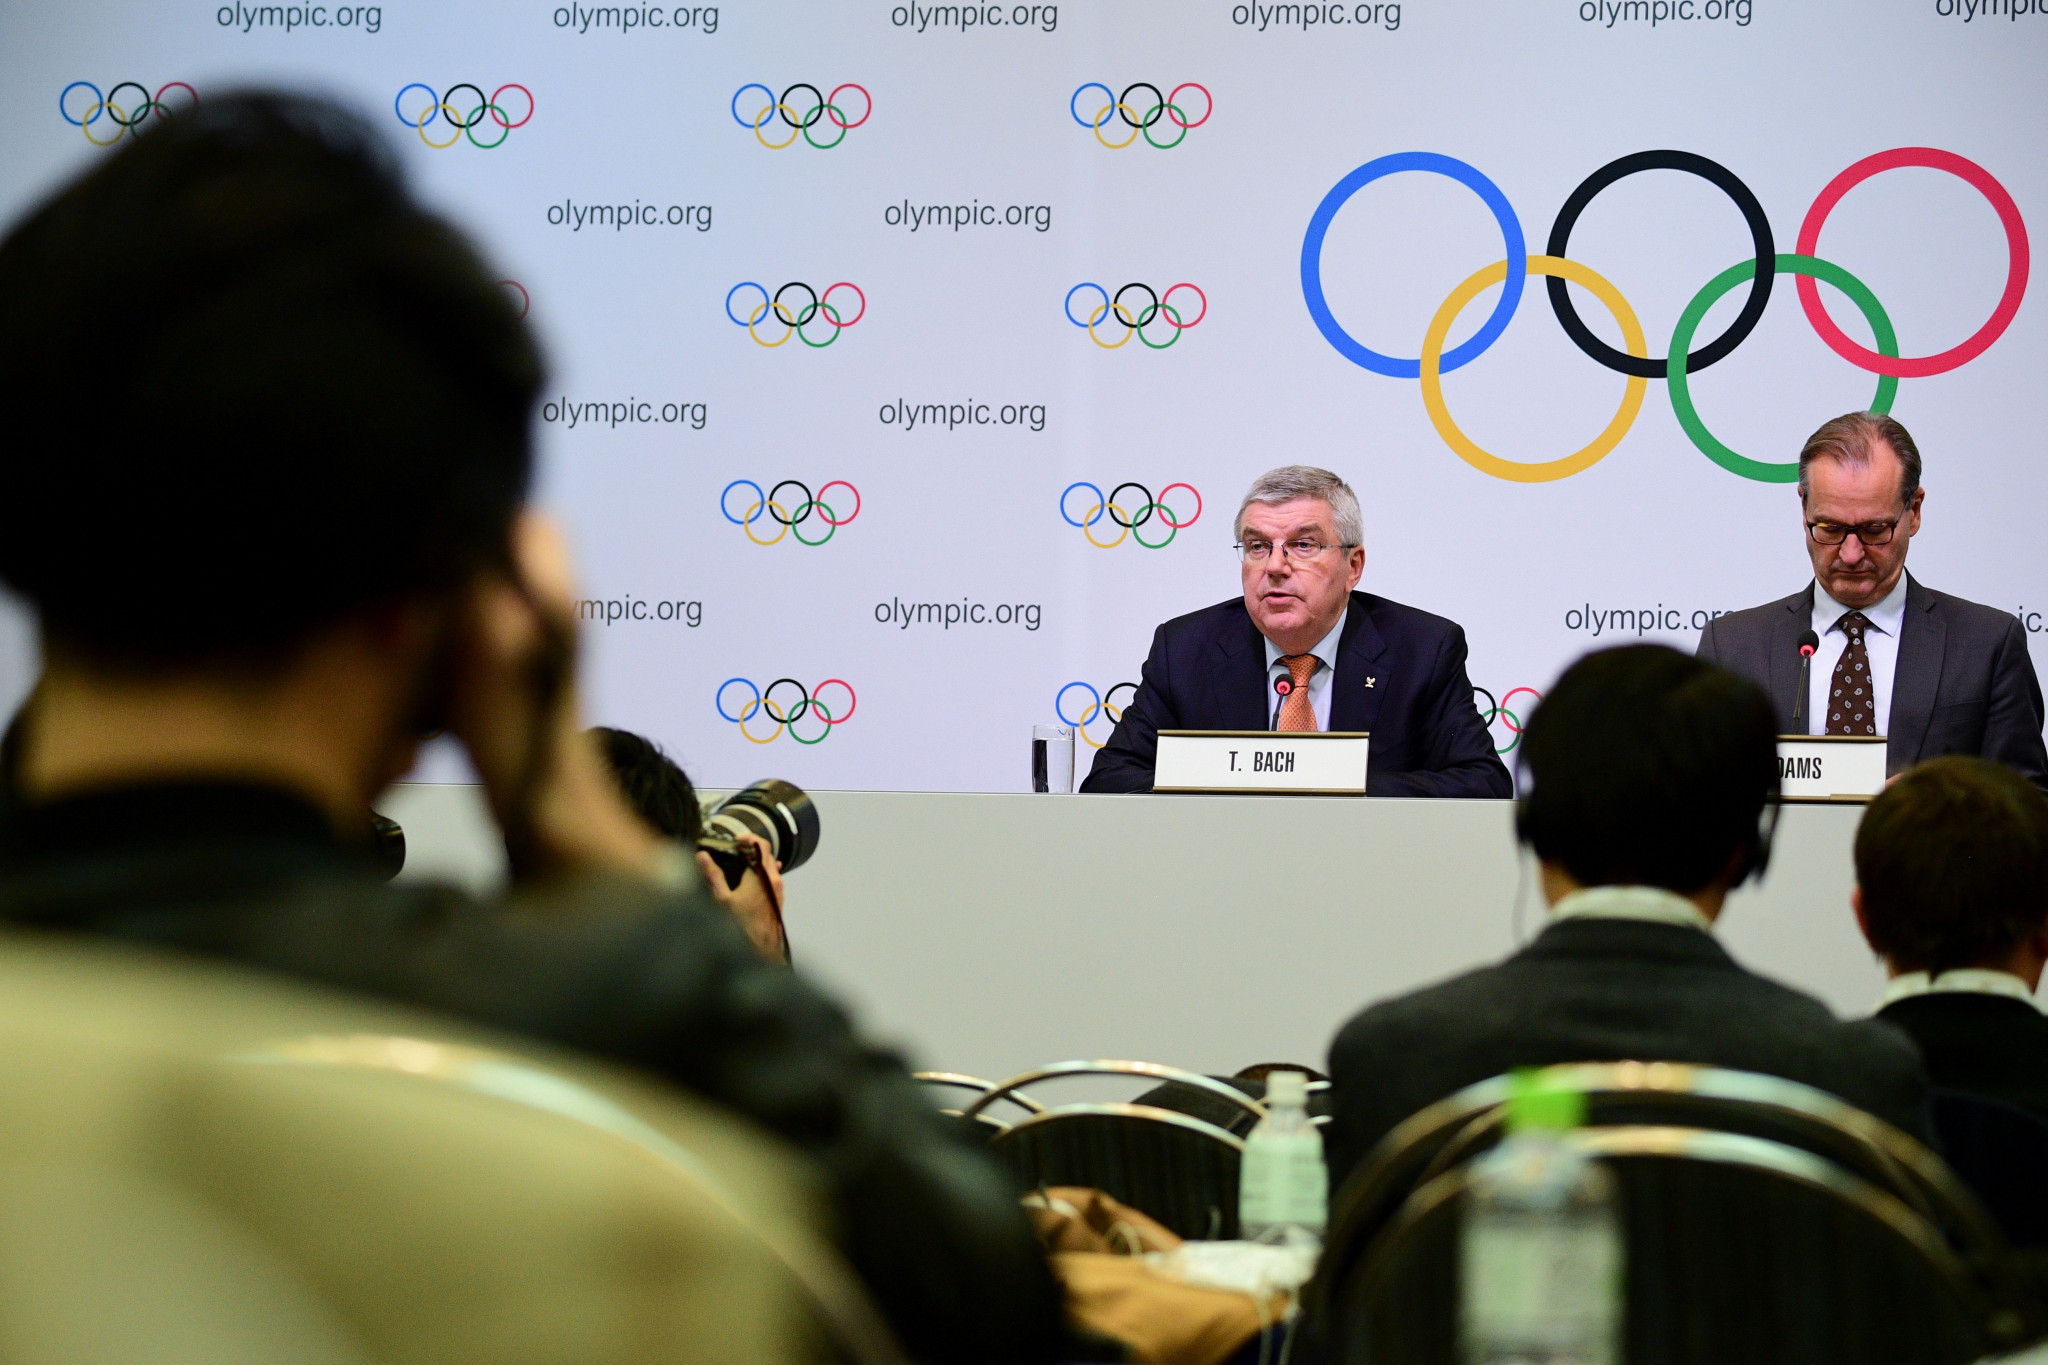 IOC President Thomas Bach announed the formation of the new committee after the Executive Board meeting ©Getty Images